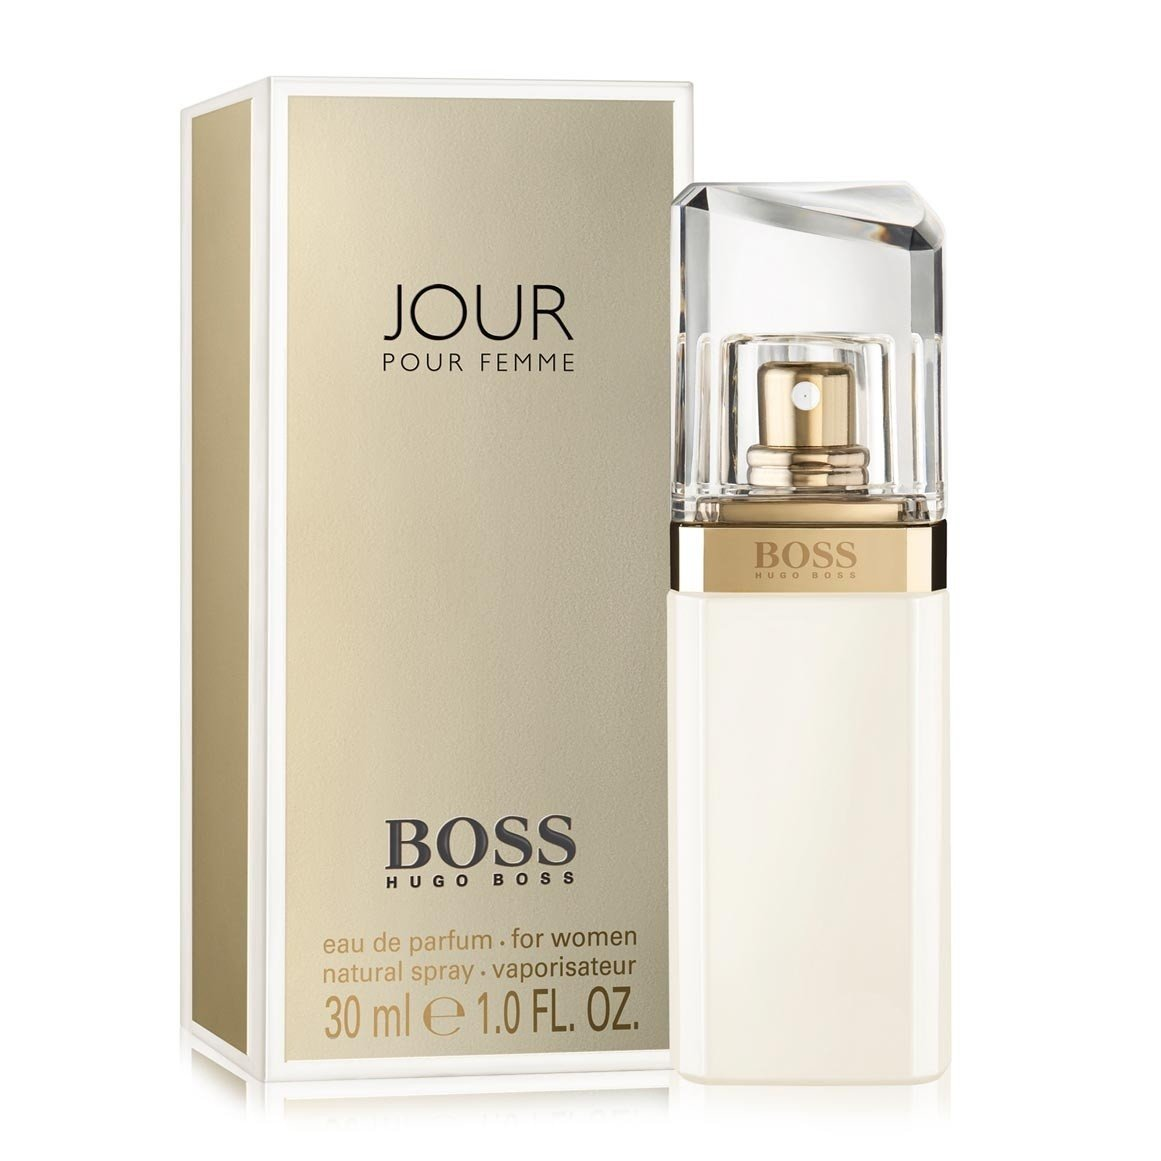 hugo boss jour pour eau de parfum spray for woman 30 ml ebay. Black Bedroom Furniture Sets. Home Design Ideas